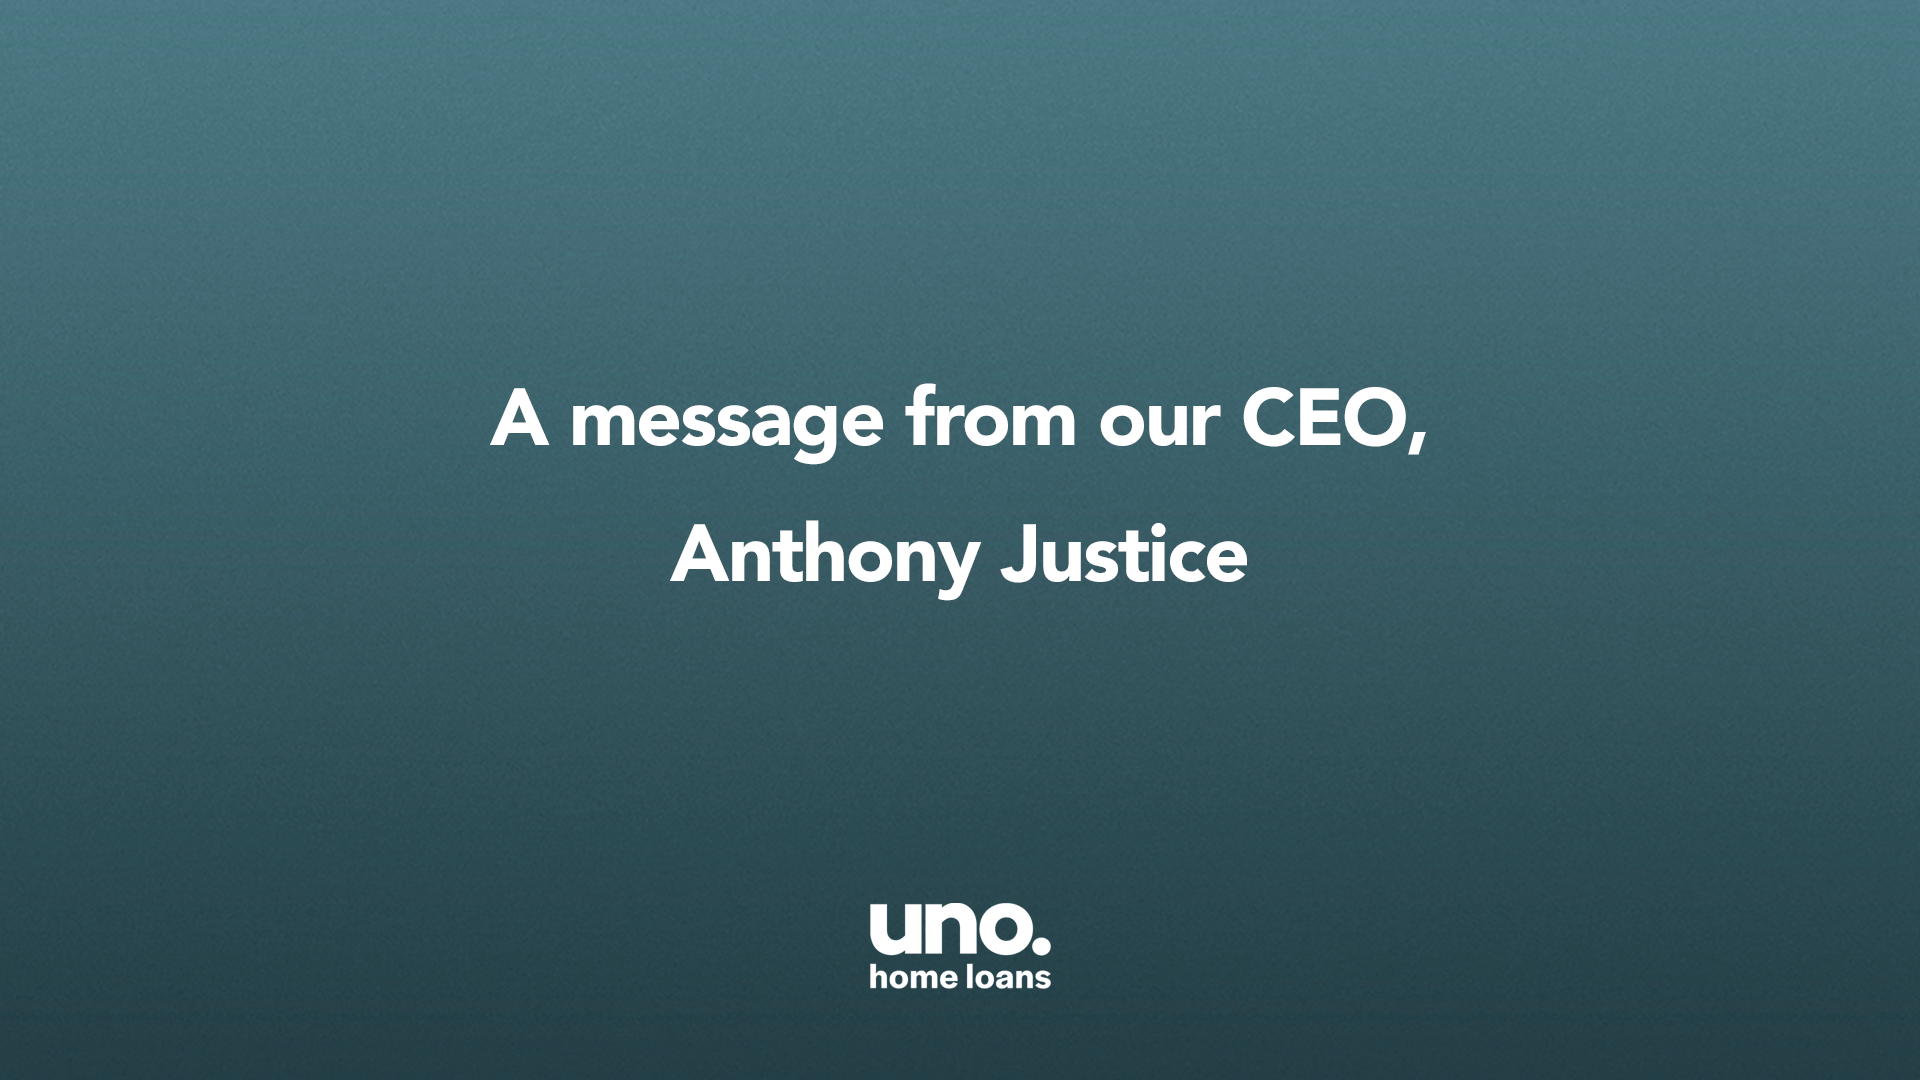 A message from our CEO, Anthony Justice